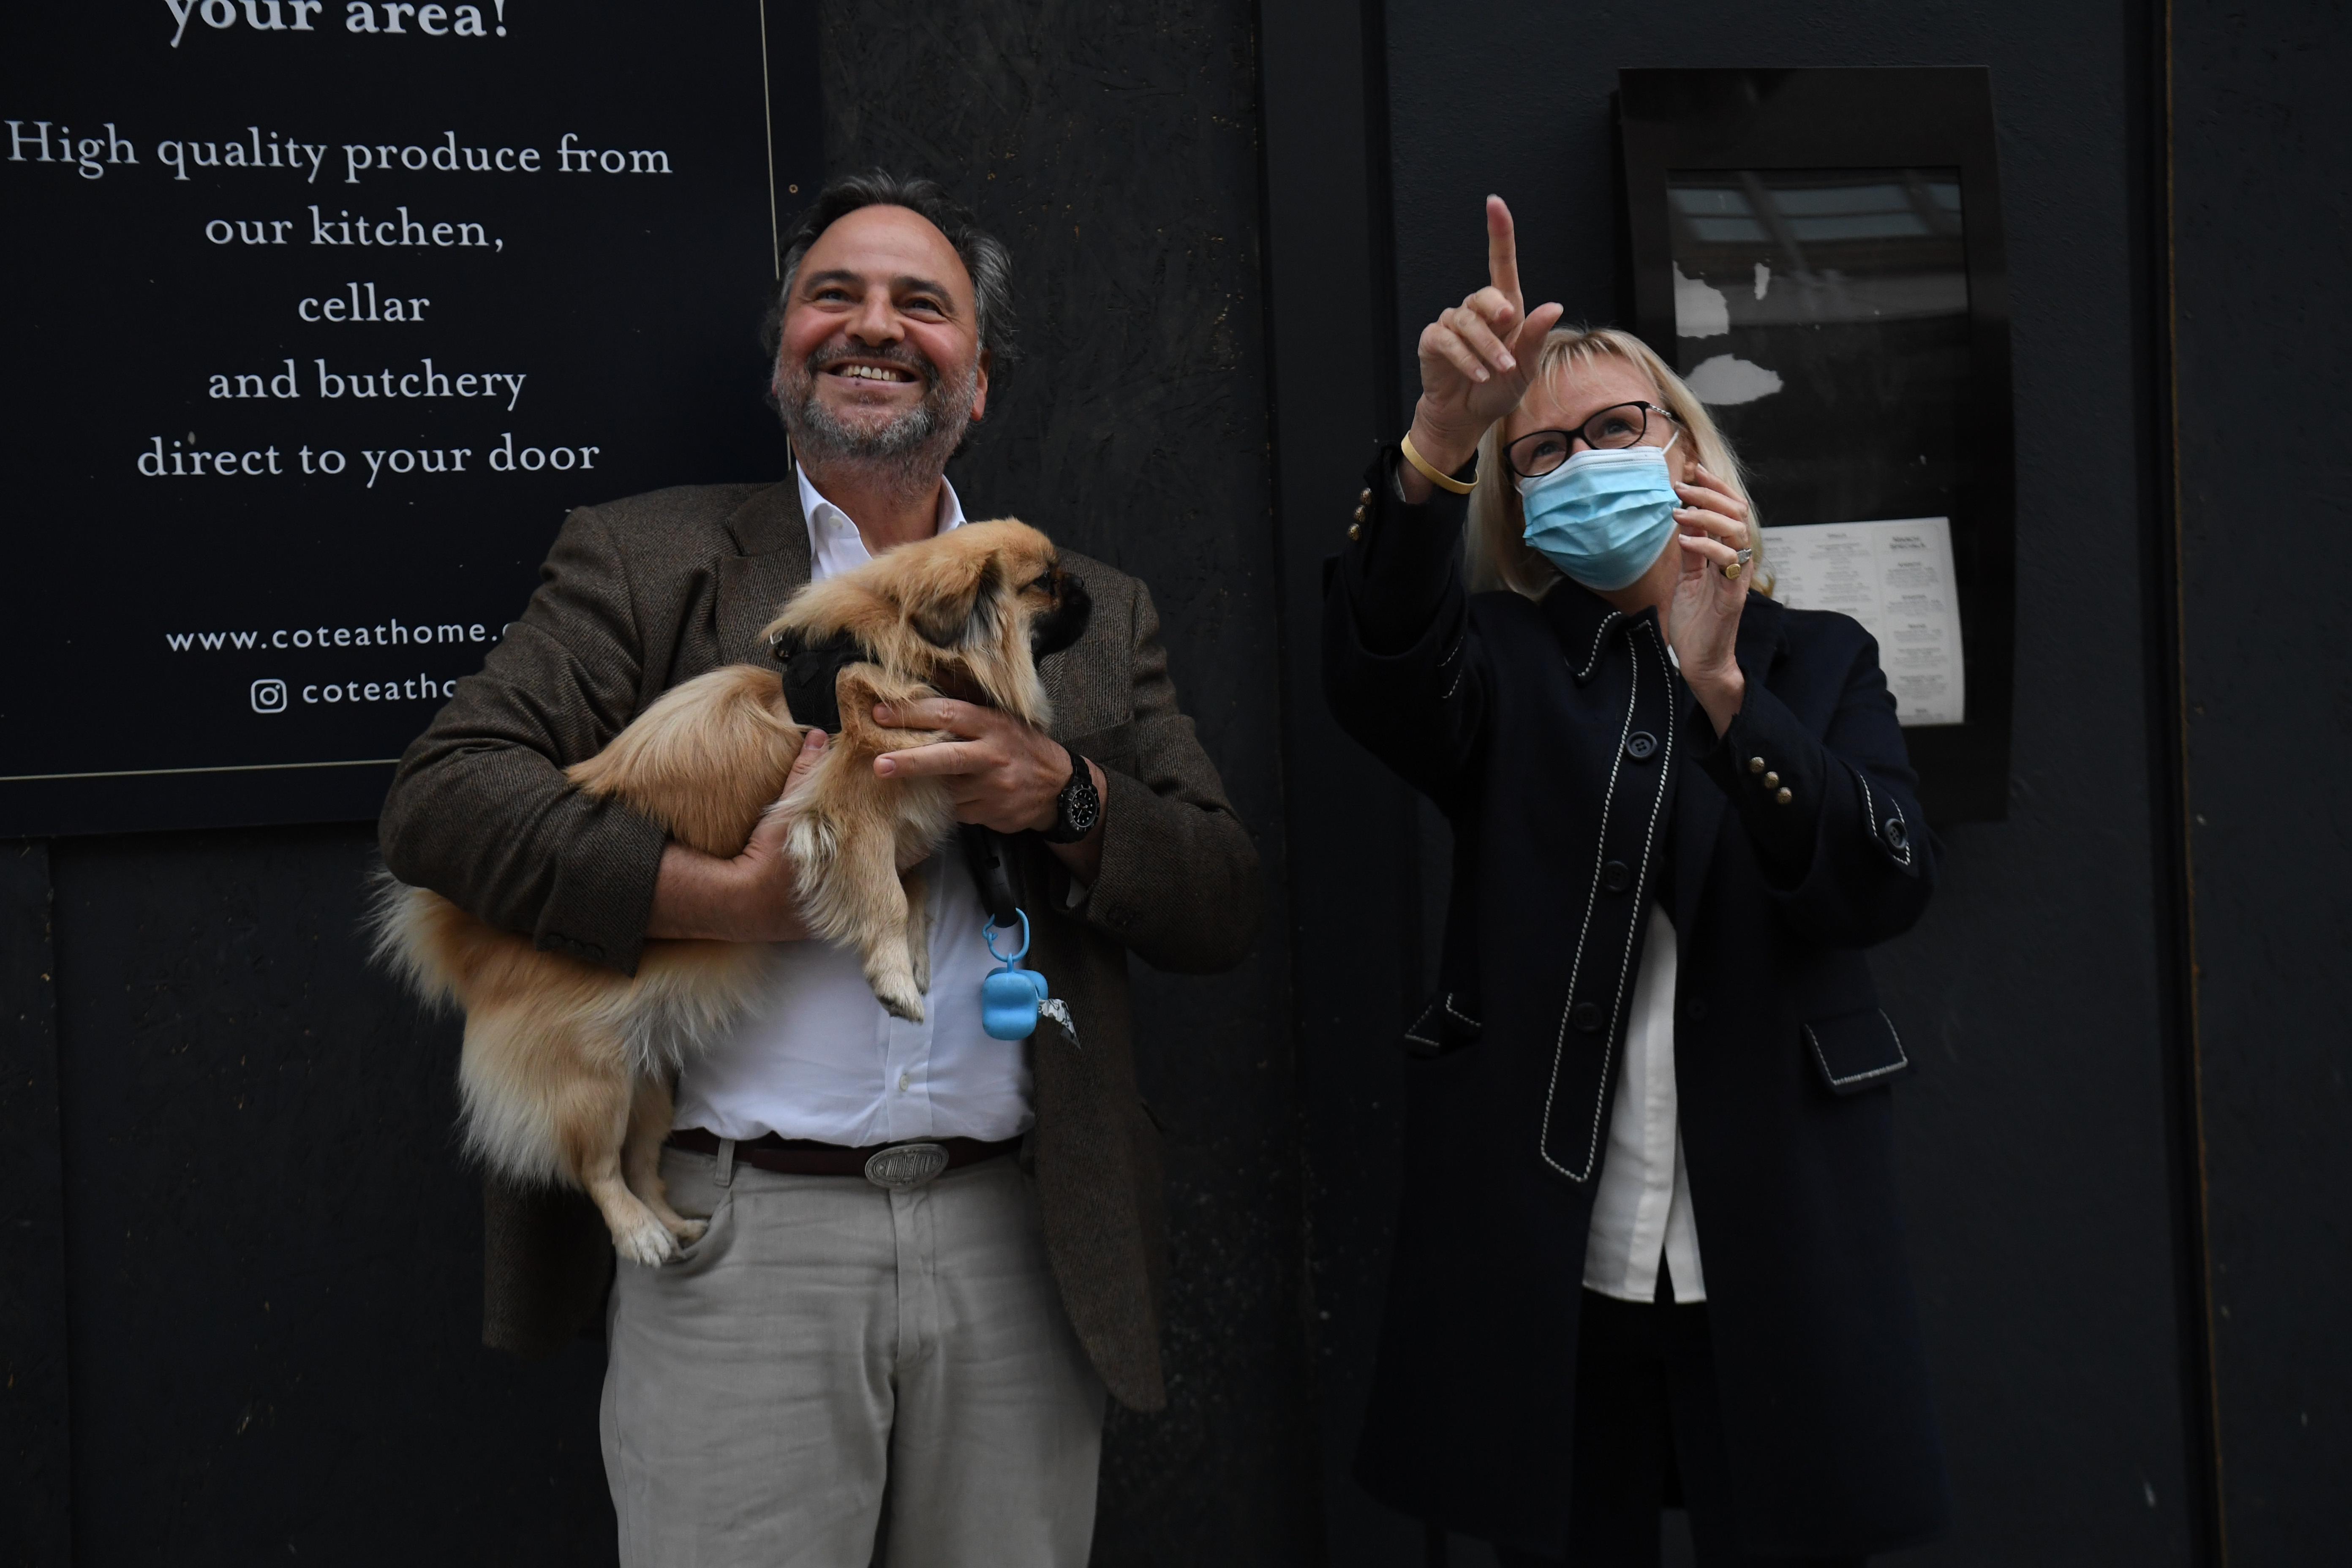 A couple outside the Chelsea and Westminster Hospital, London, join in applause during a Clap for Carers to recognise and support NHS workers and carers fighting the coronavirus pandemic. (Photo by Kirsty O'Connor/PA Images via Getty Images)